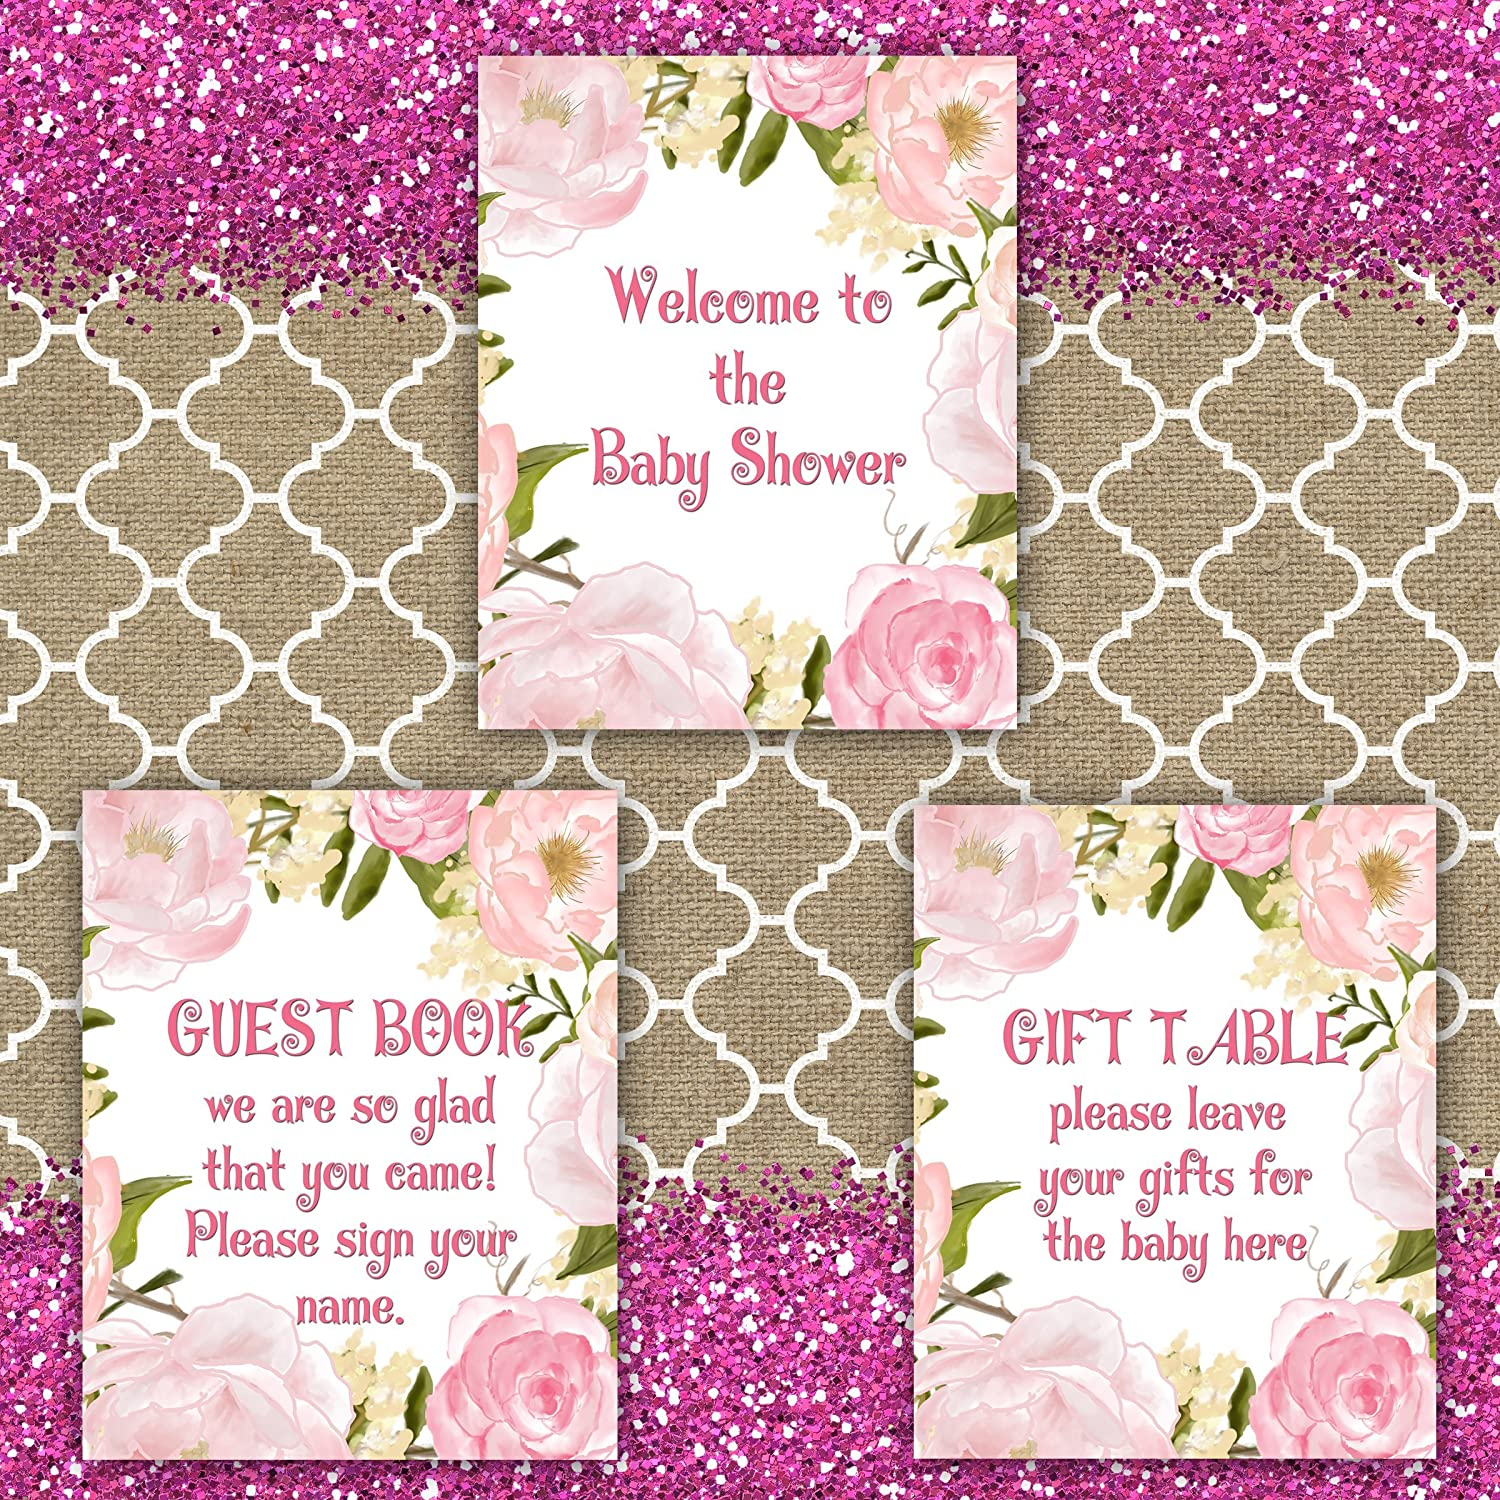 Amazoncom Baby Shower Welcome Sign, Welcome To Baby Shower Sign,